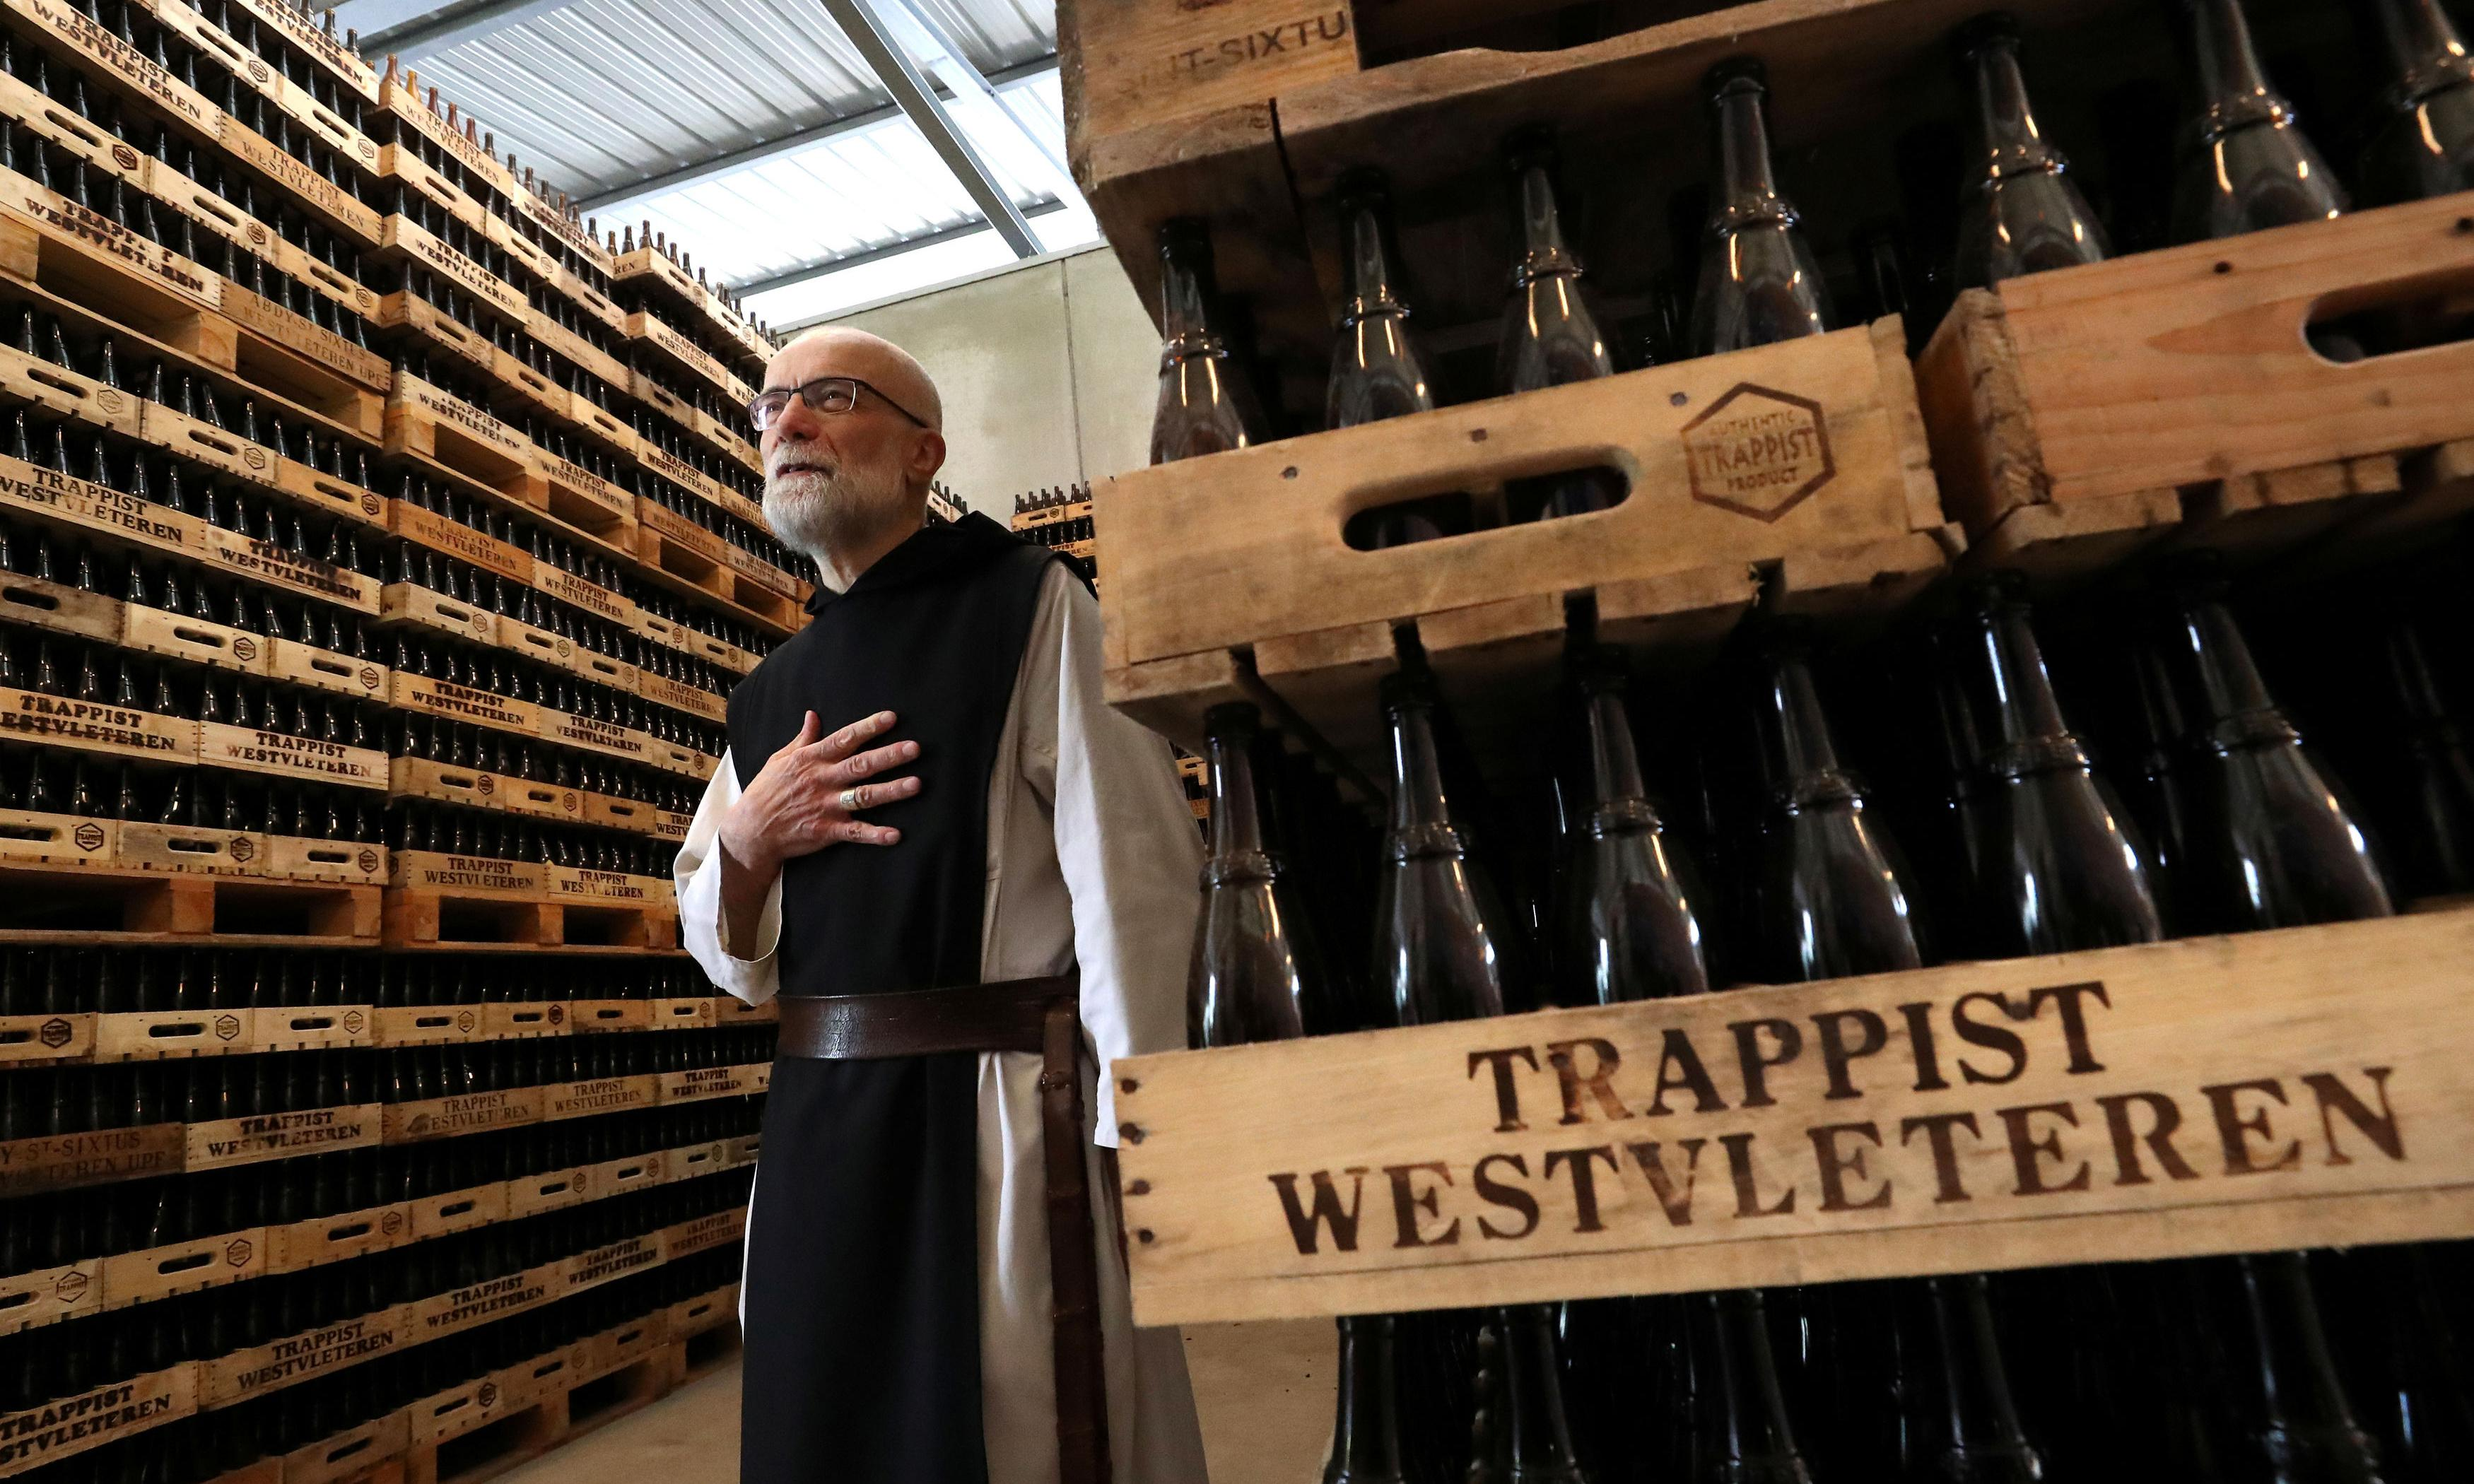 Belgian monks finally launch website to sell 'world's best beer'